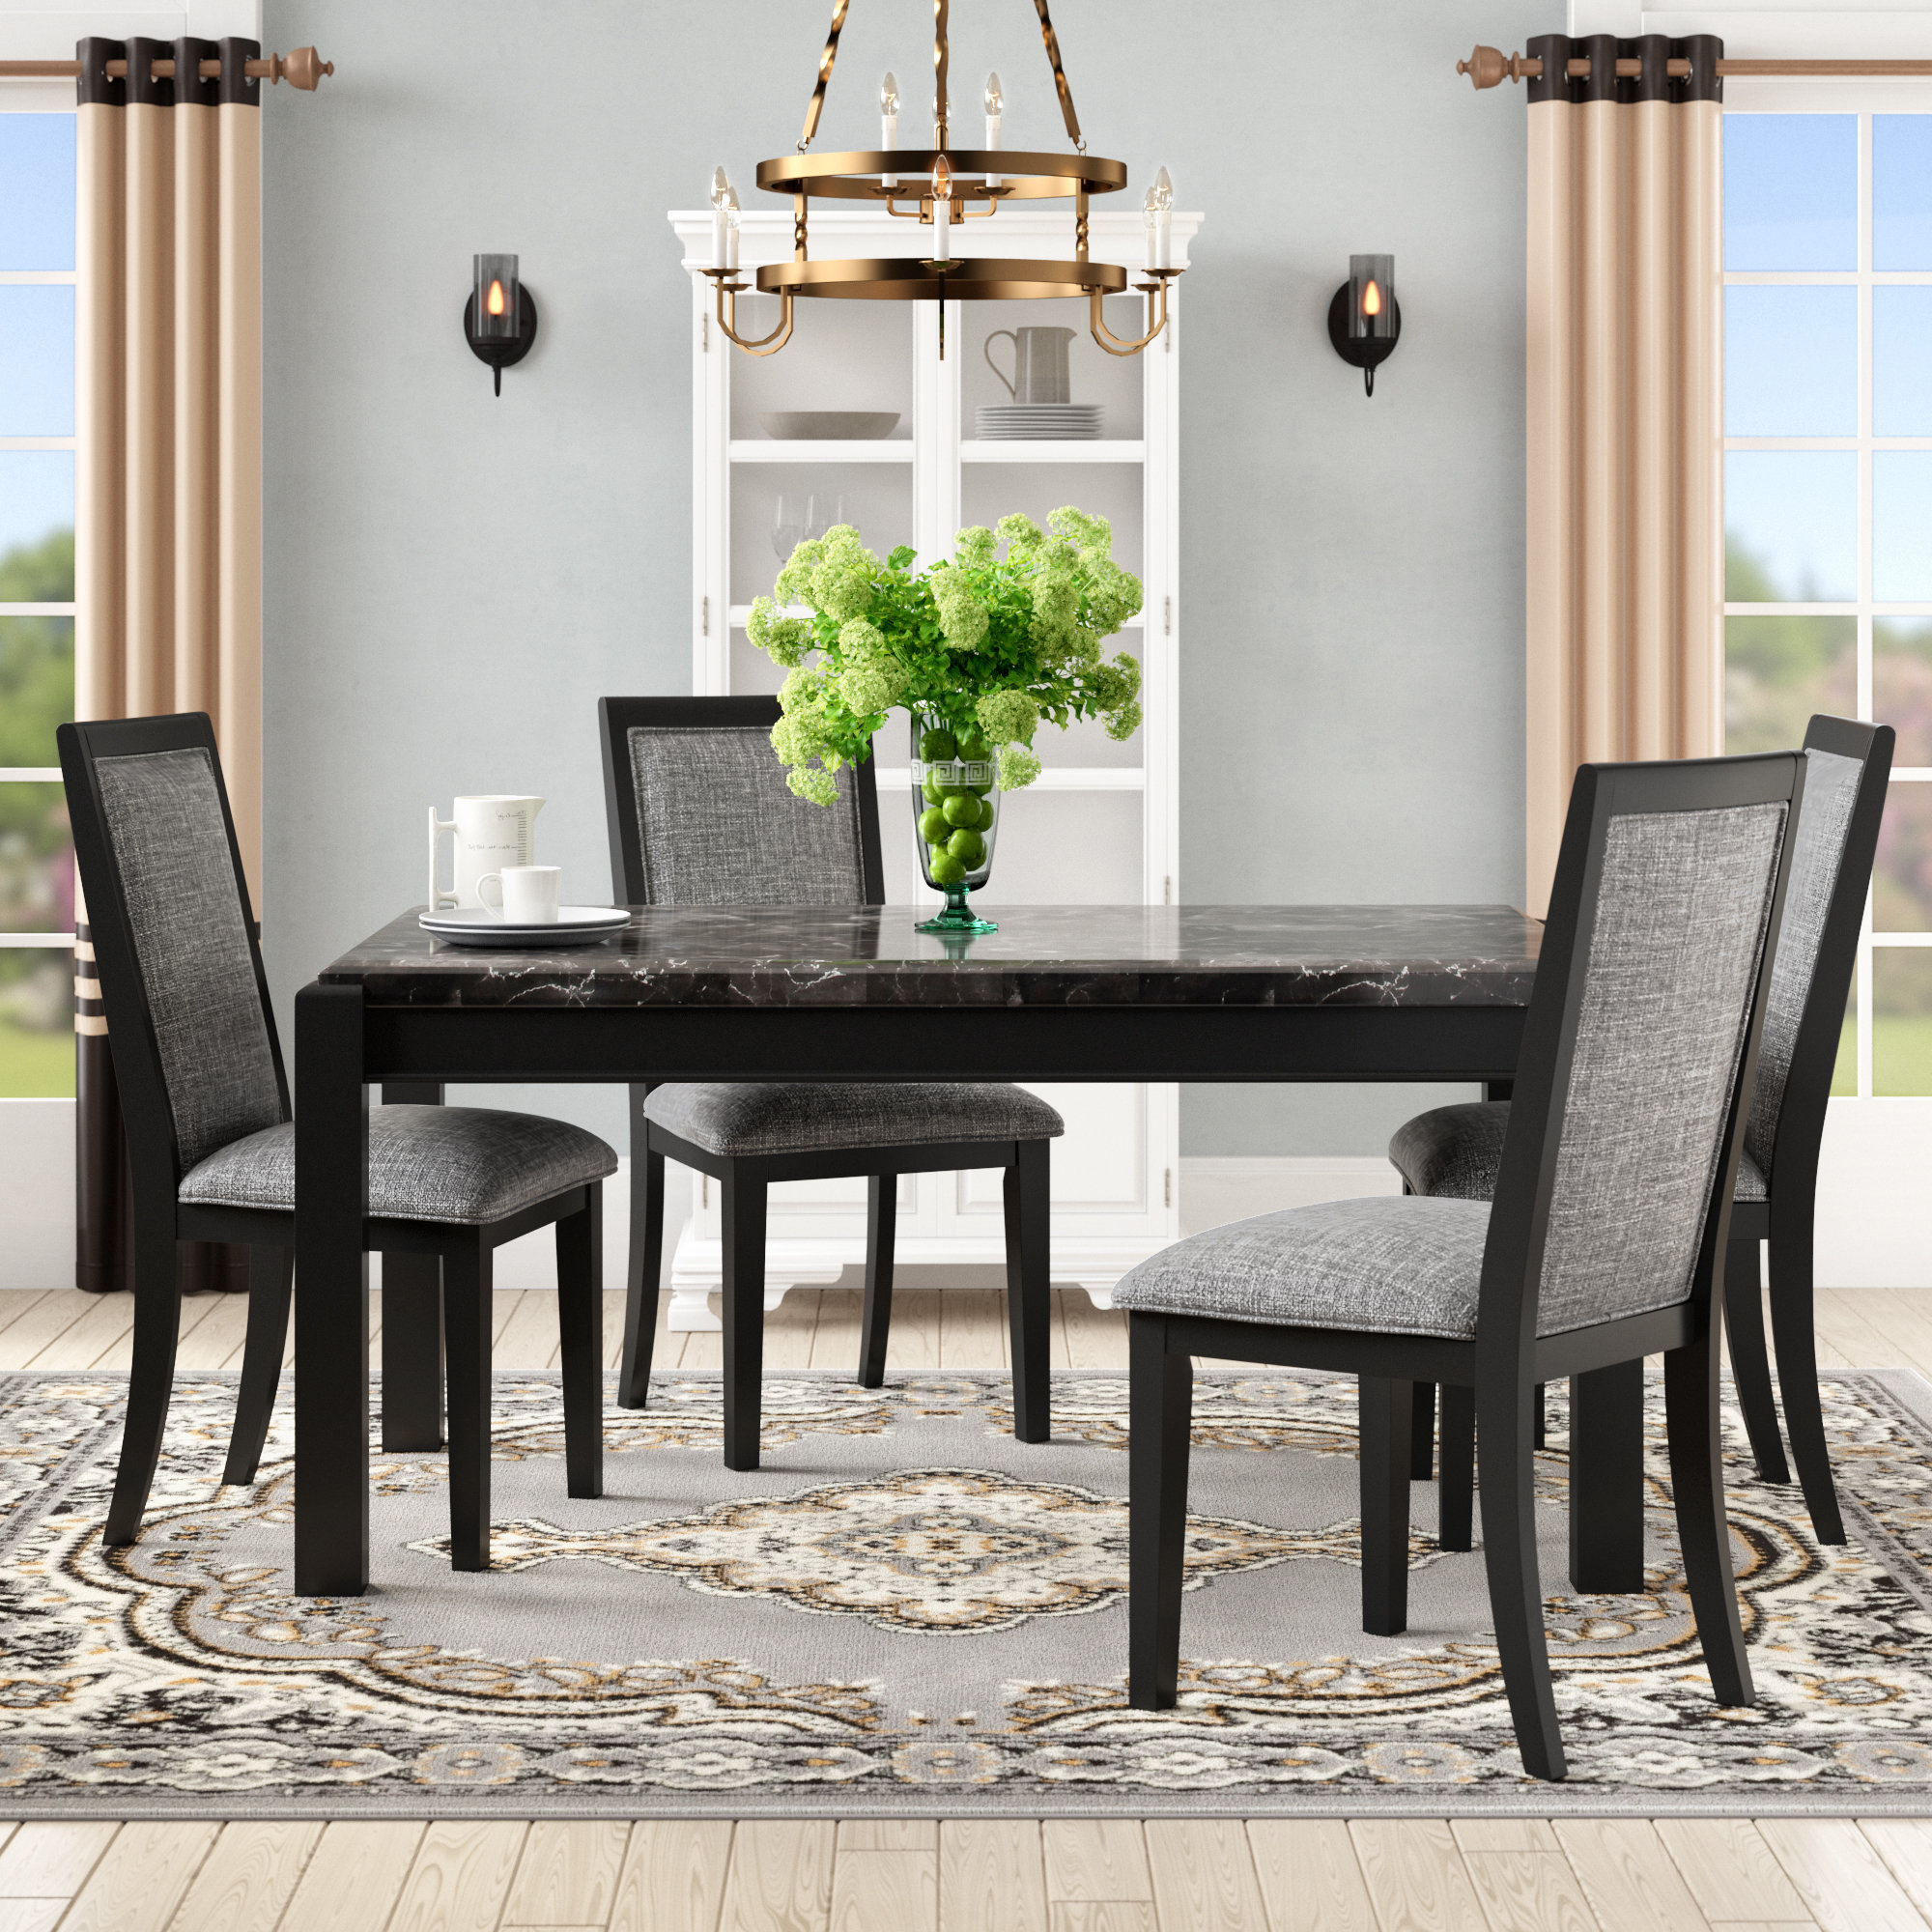 Well Liked Wozniak 5 Piece Solid Wood Dining Set Inside Isolde 3 Piece Dining Sets (View 19 of 20)